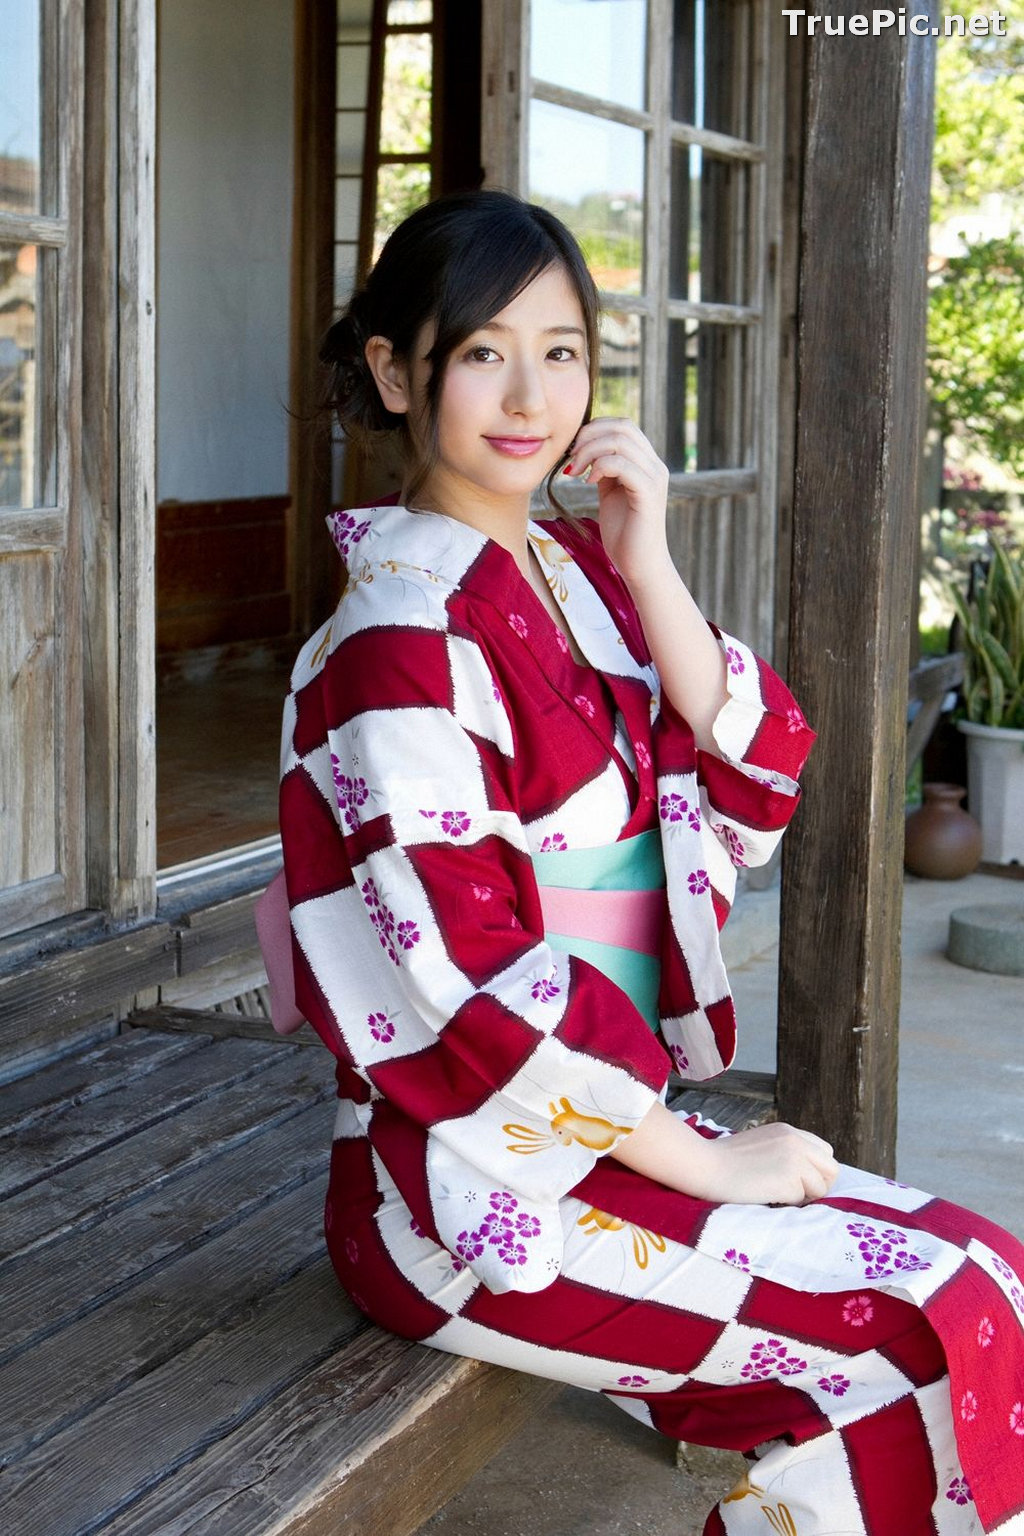 Image [YS Web] Vol.561 - Japanese Actress and Gravure Idol - Murakami Yuri - TruePic.net - Picture-3